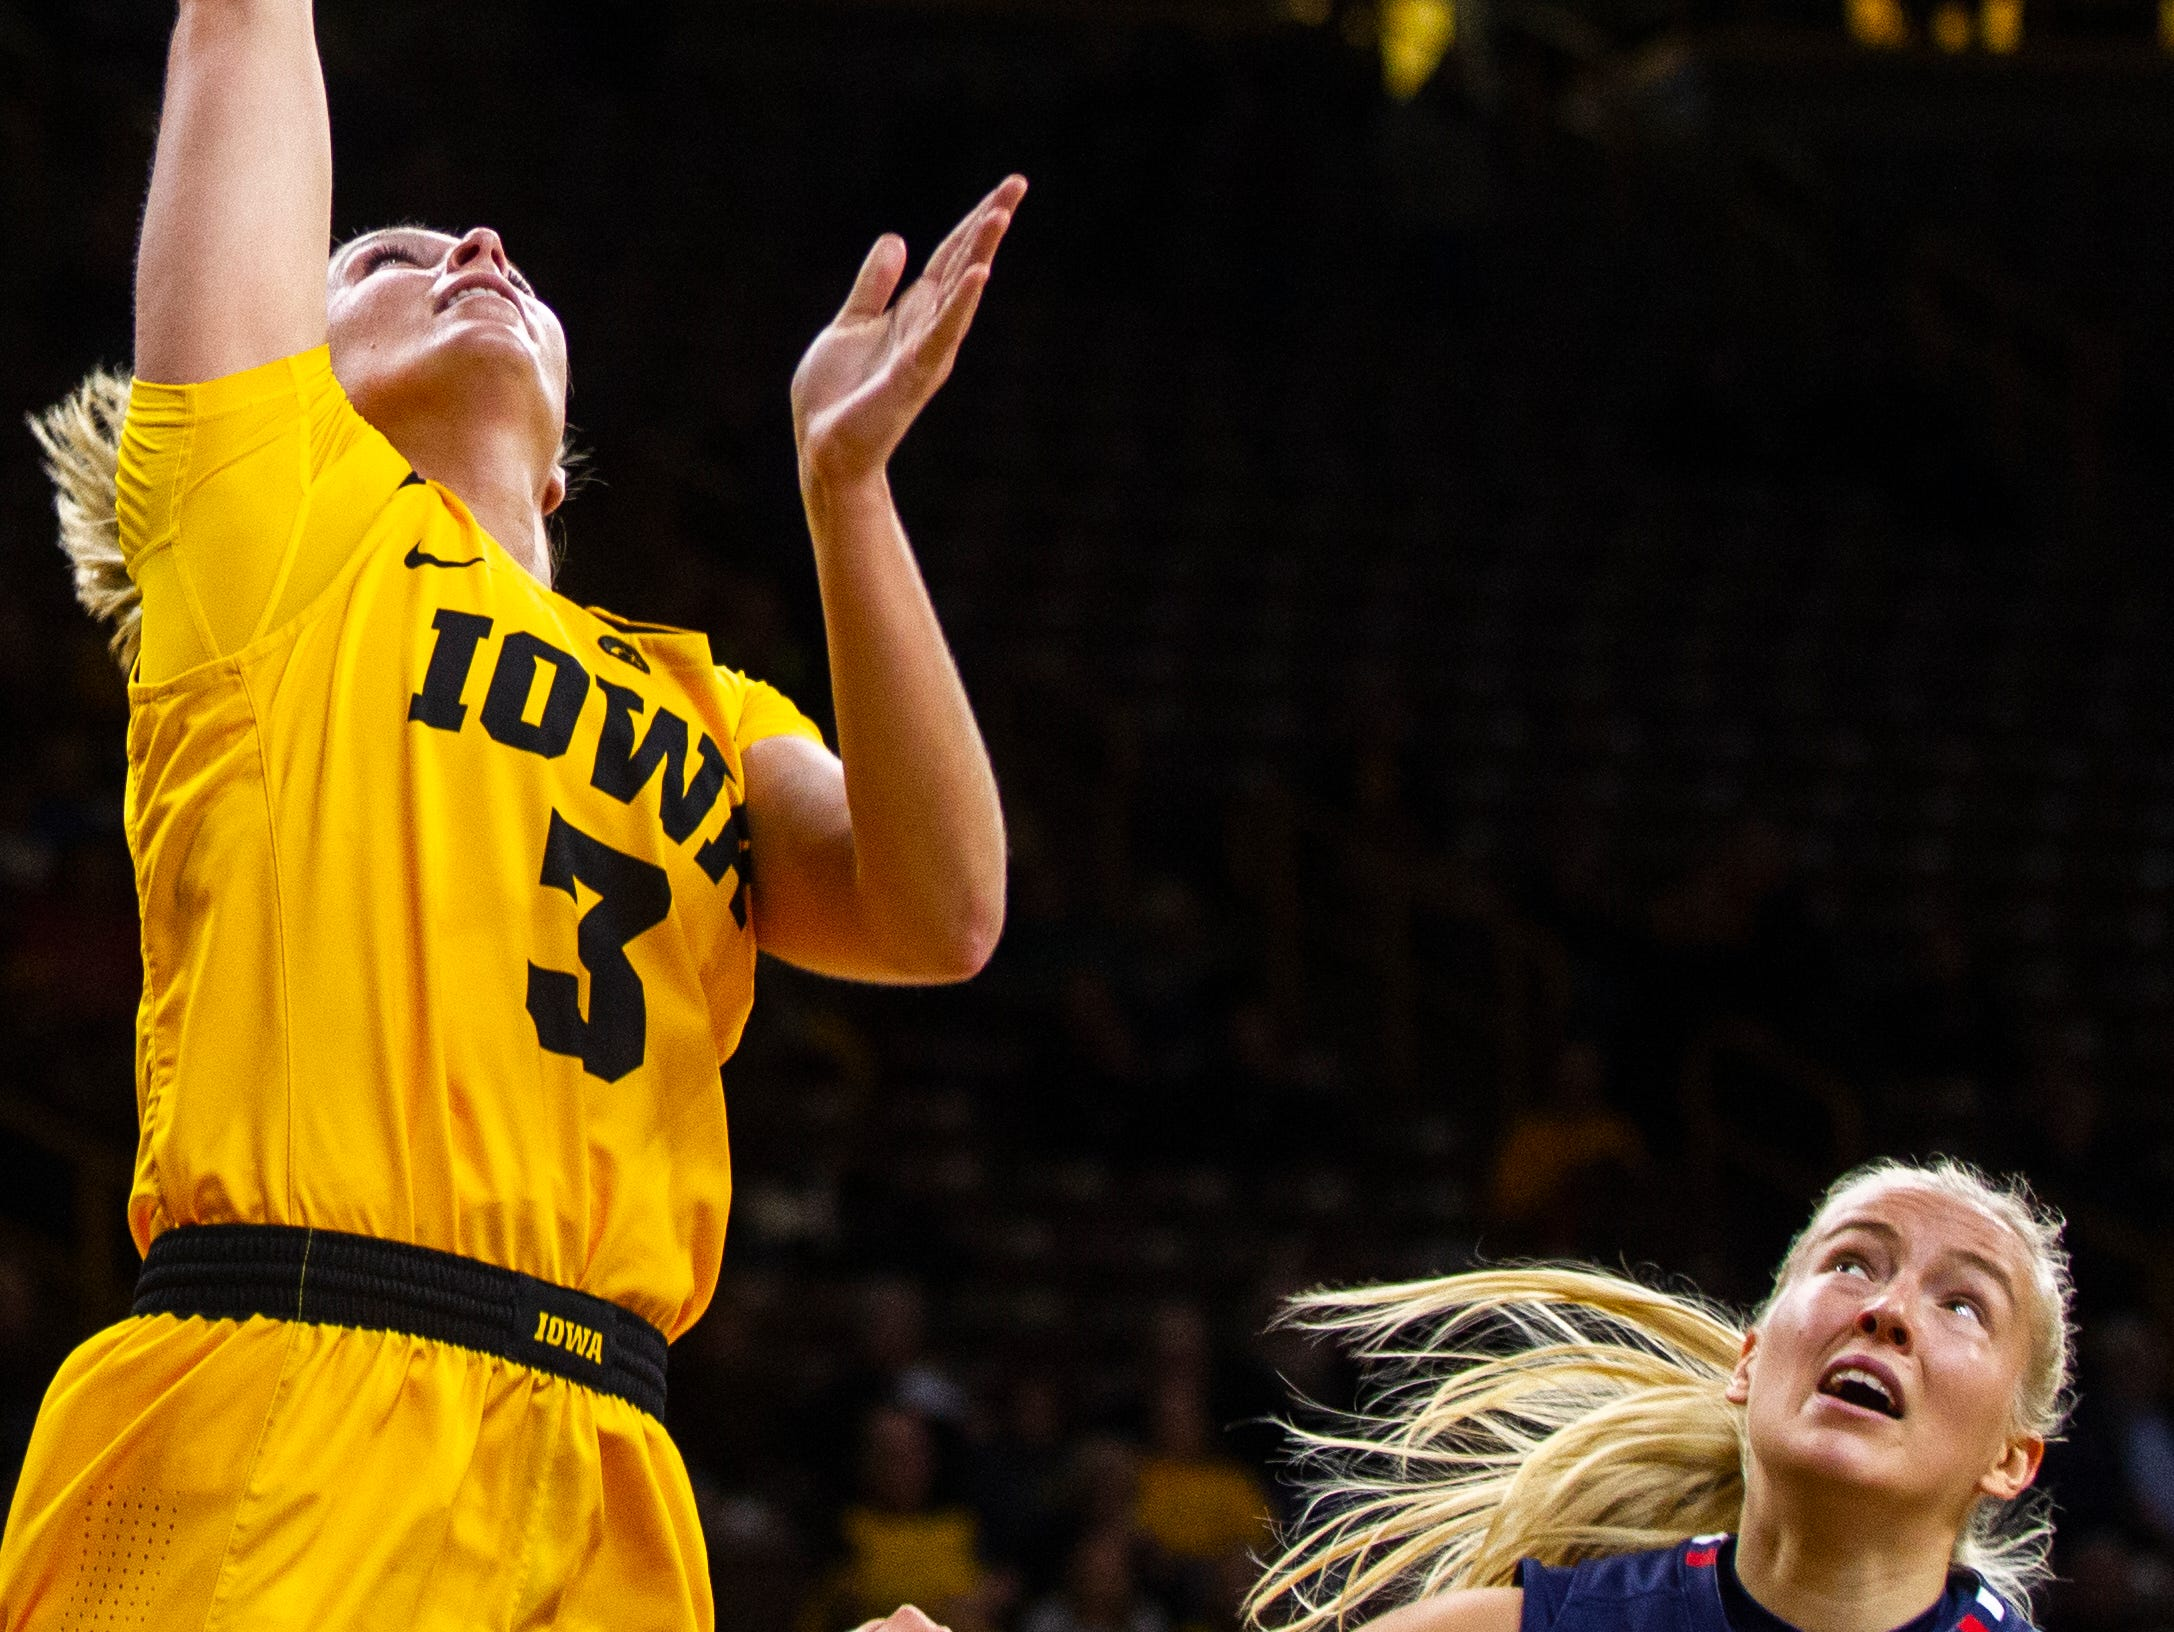 Iowa guard Makenzie Meyer (3) makes a basket during a NCAA women's basketball game on Sunday, Dec. 2, 2018, at Carver-Hawkeye Arena in Iowa City.